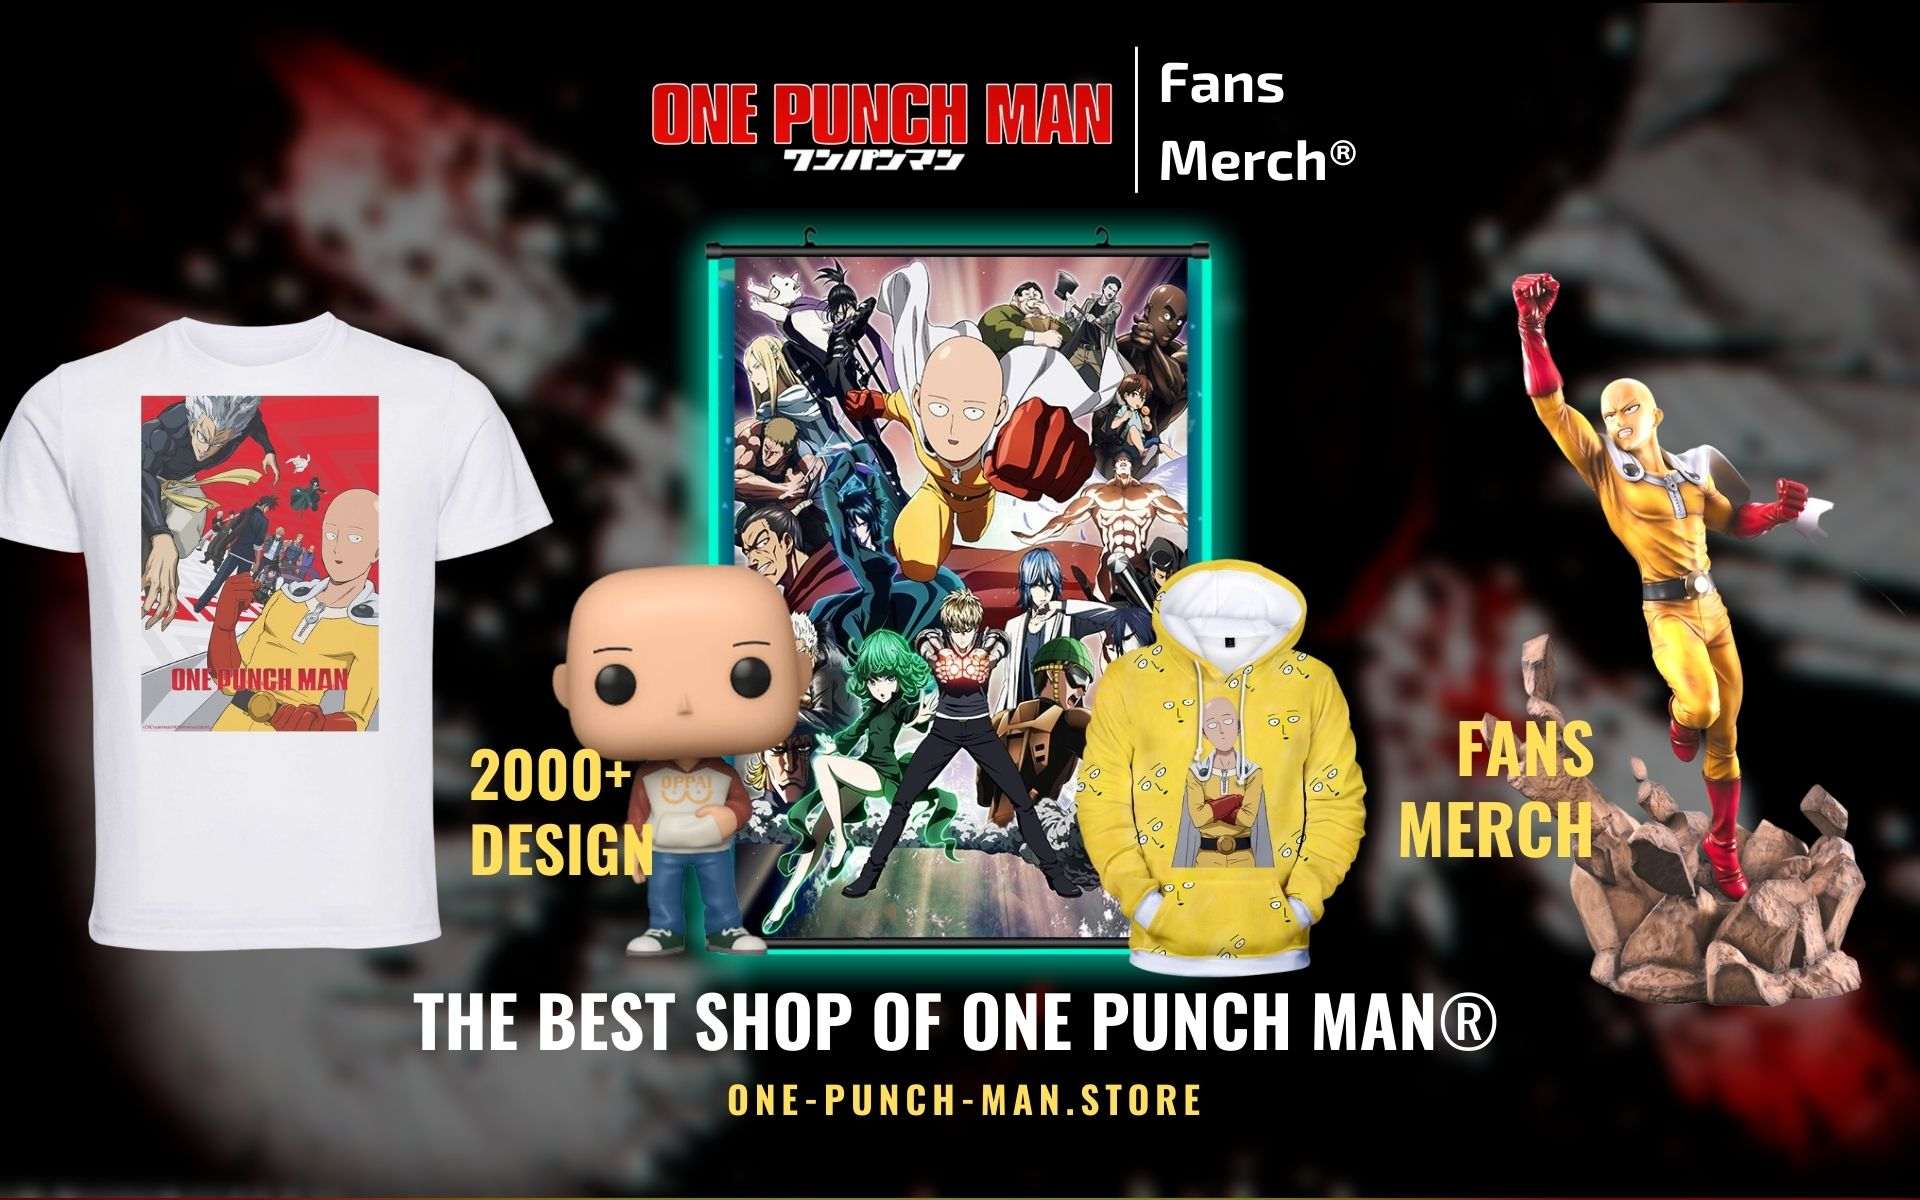 One Punch Man Merch Web Banner - One Punch Man Store